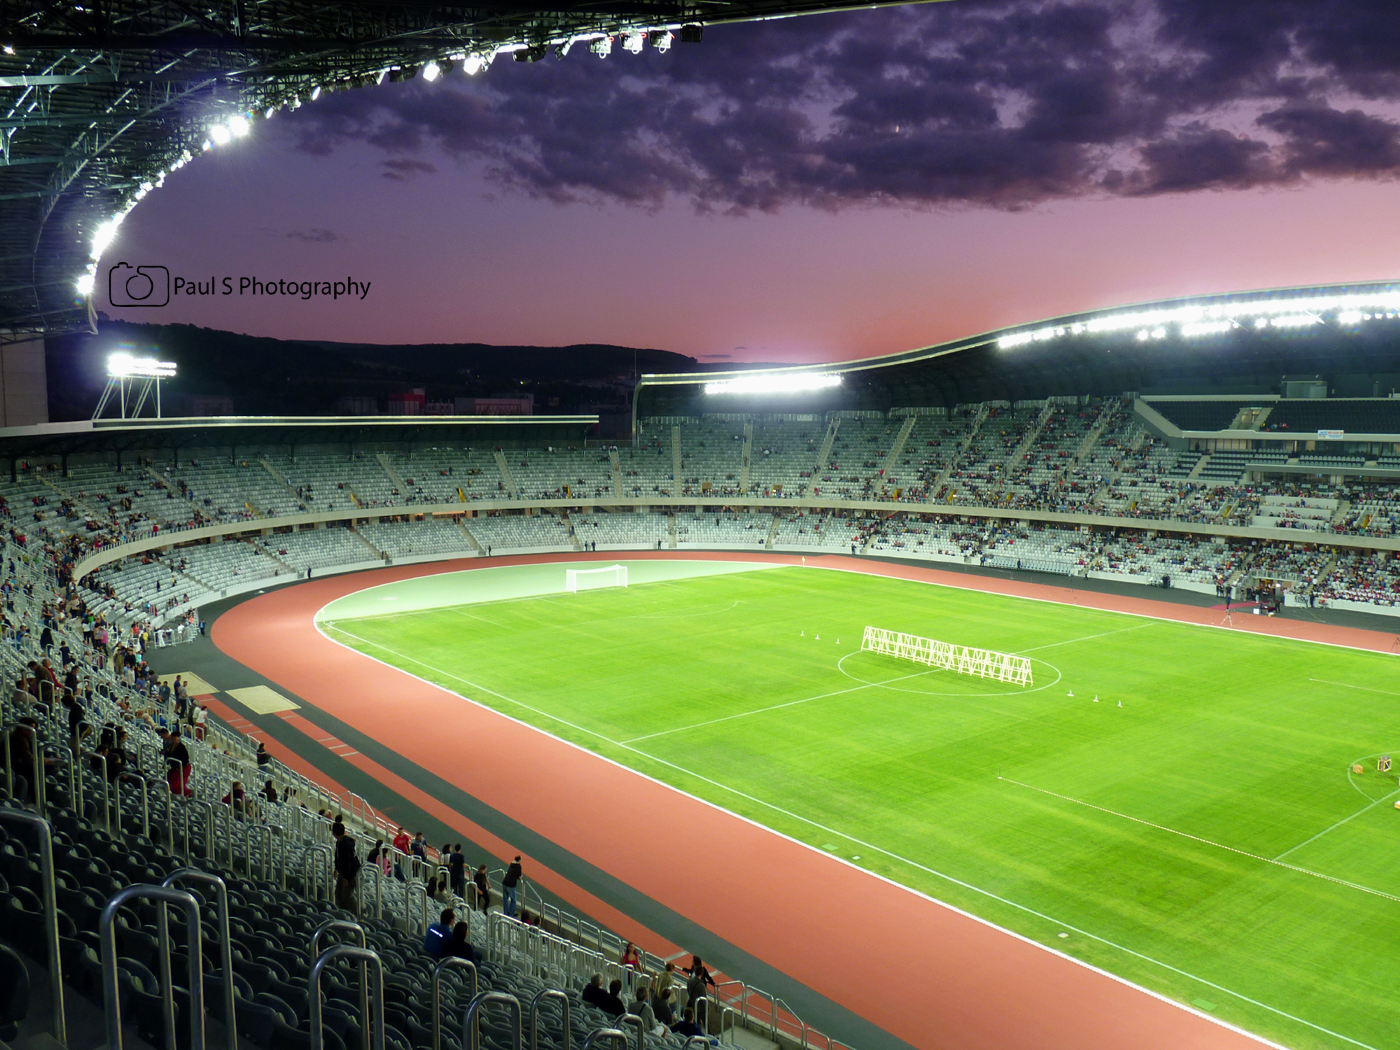 nocturna stadion cluj-arena